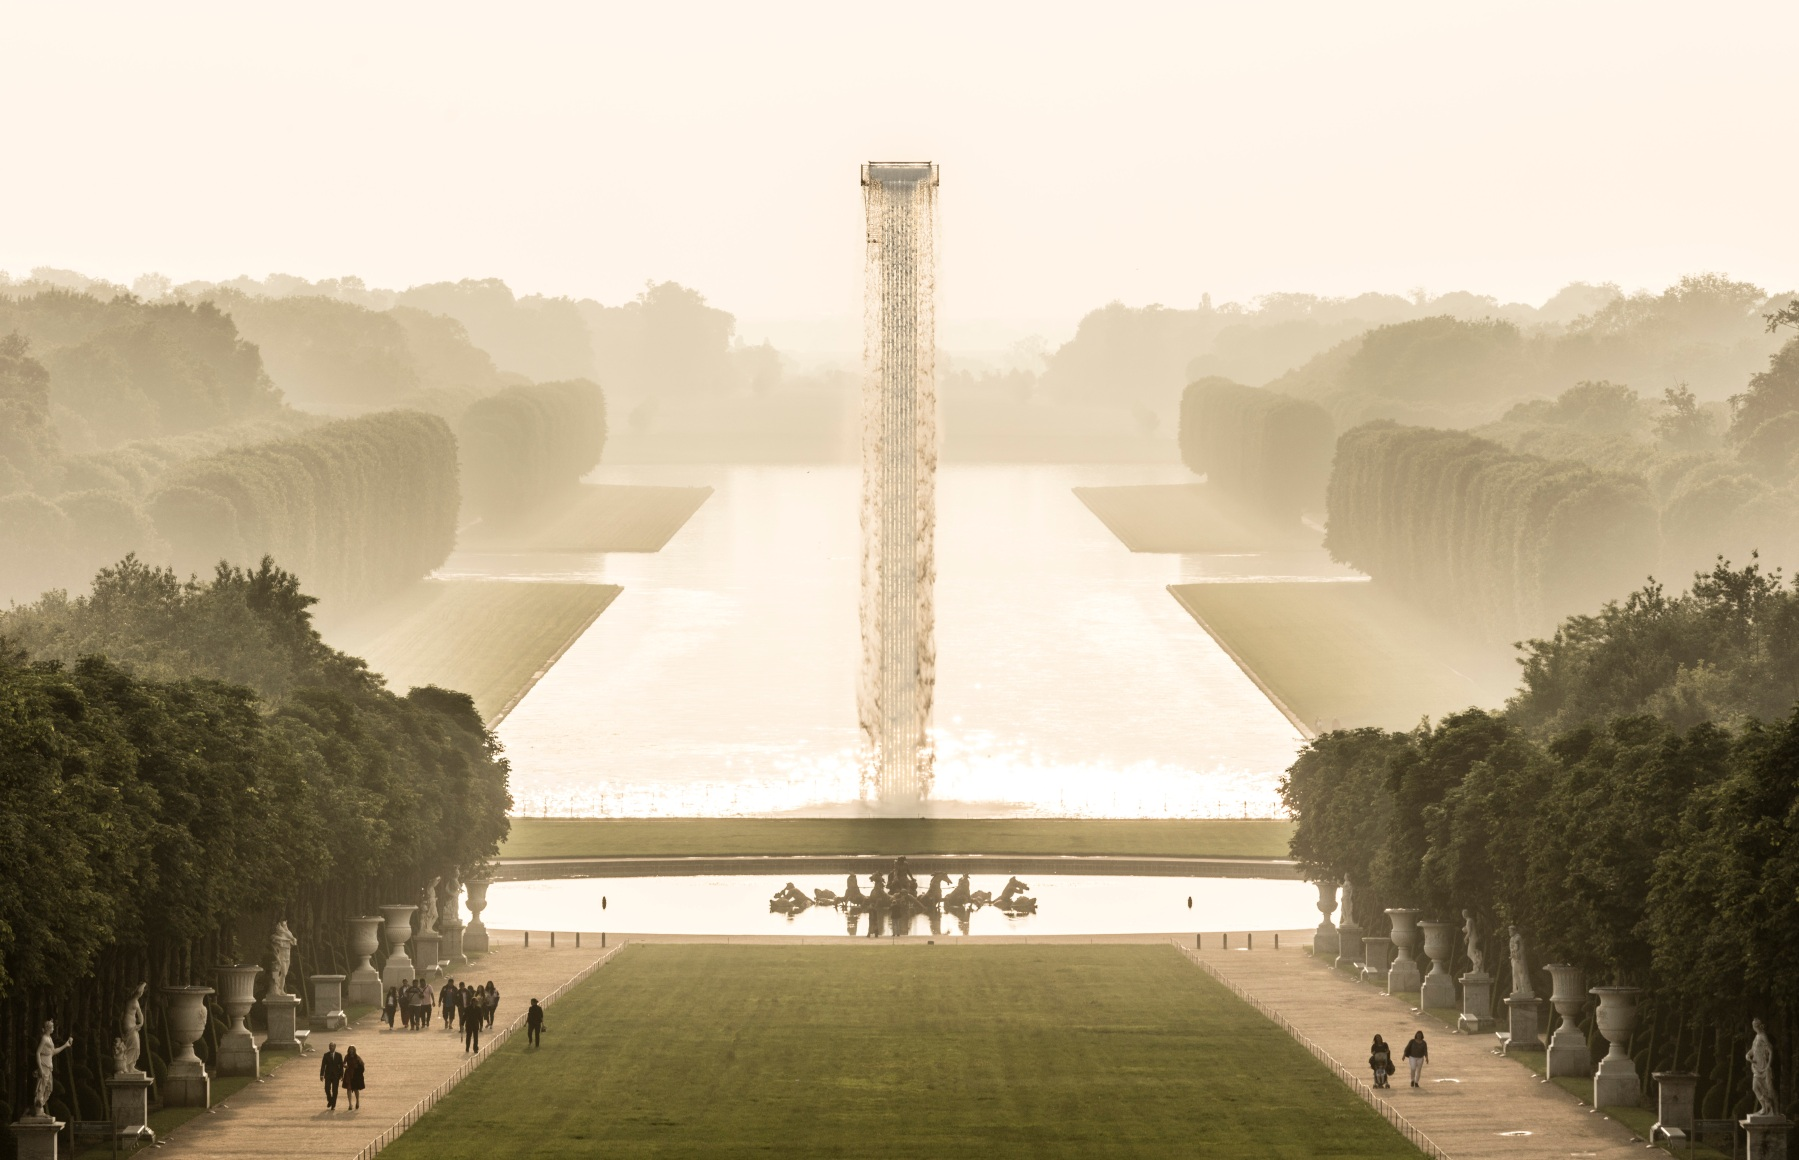 Artist Olafur Eliasson Installs a Giant Waterfall at Palace of Versailles